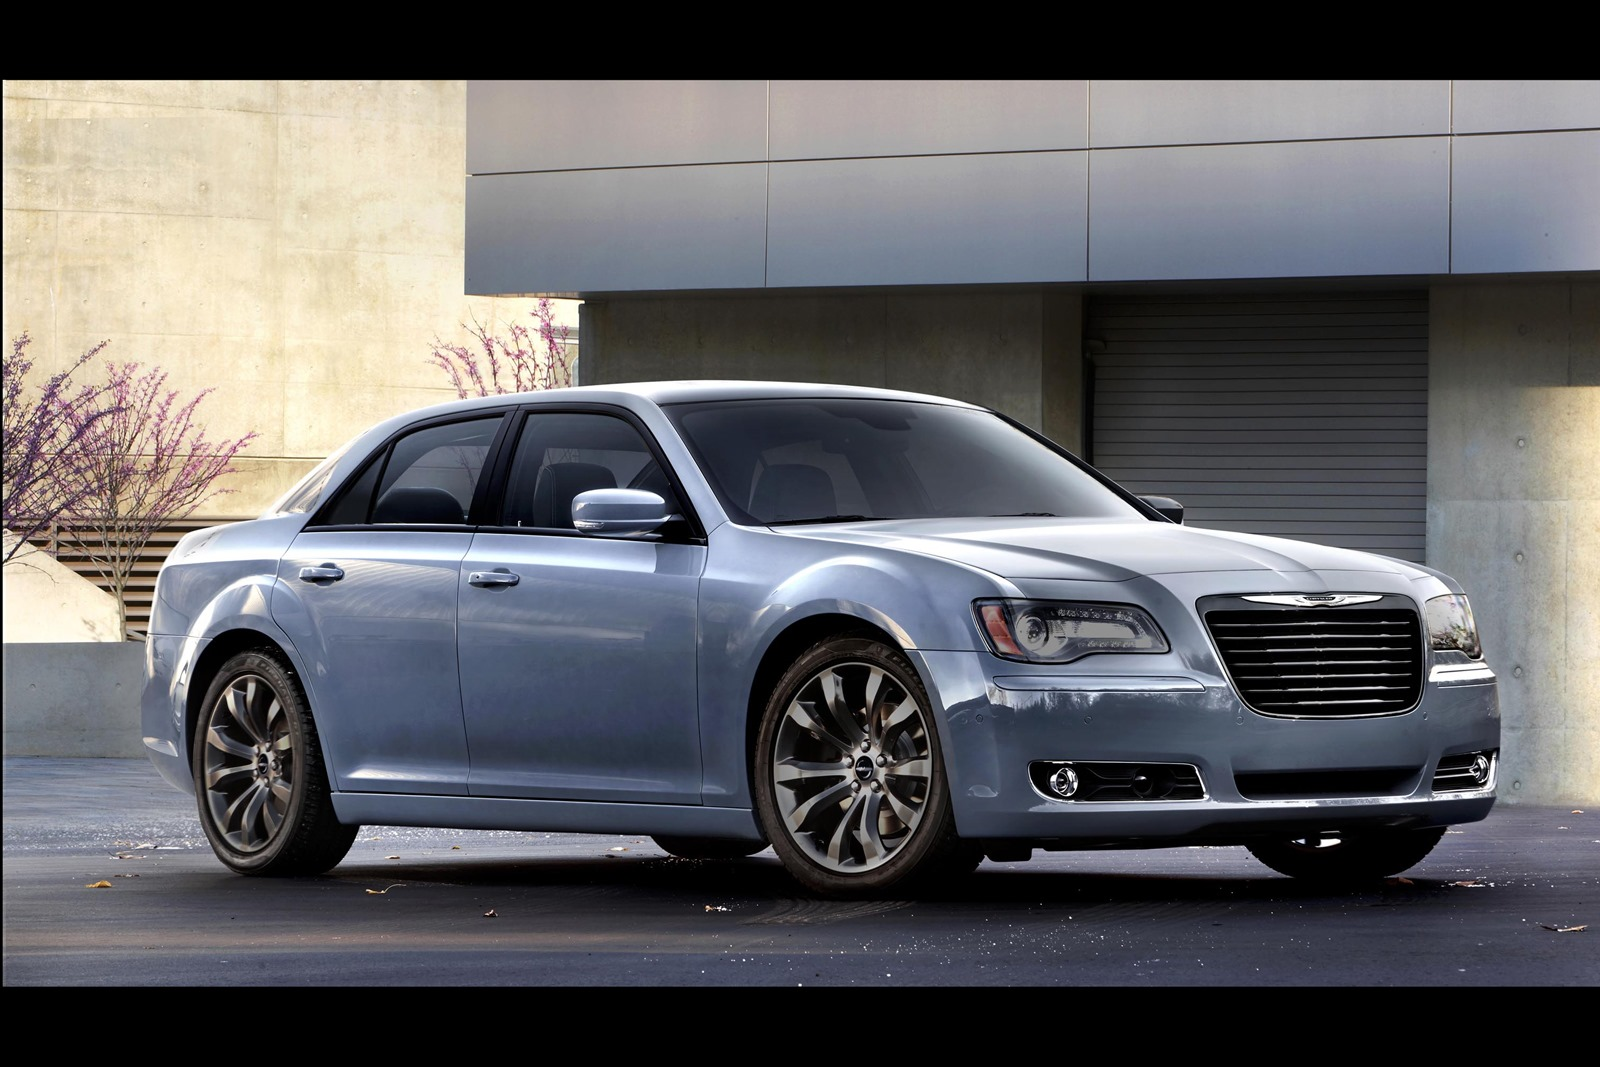 """New 300 Chrysler 2016 >> 2014 Chrysler 300S Revealed with Updated """"Blacked Out"""" Look, New Interior Color - autoevolution"""